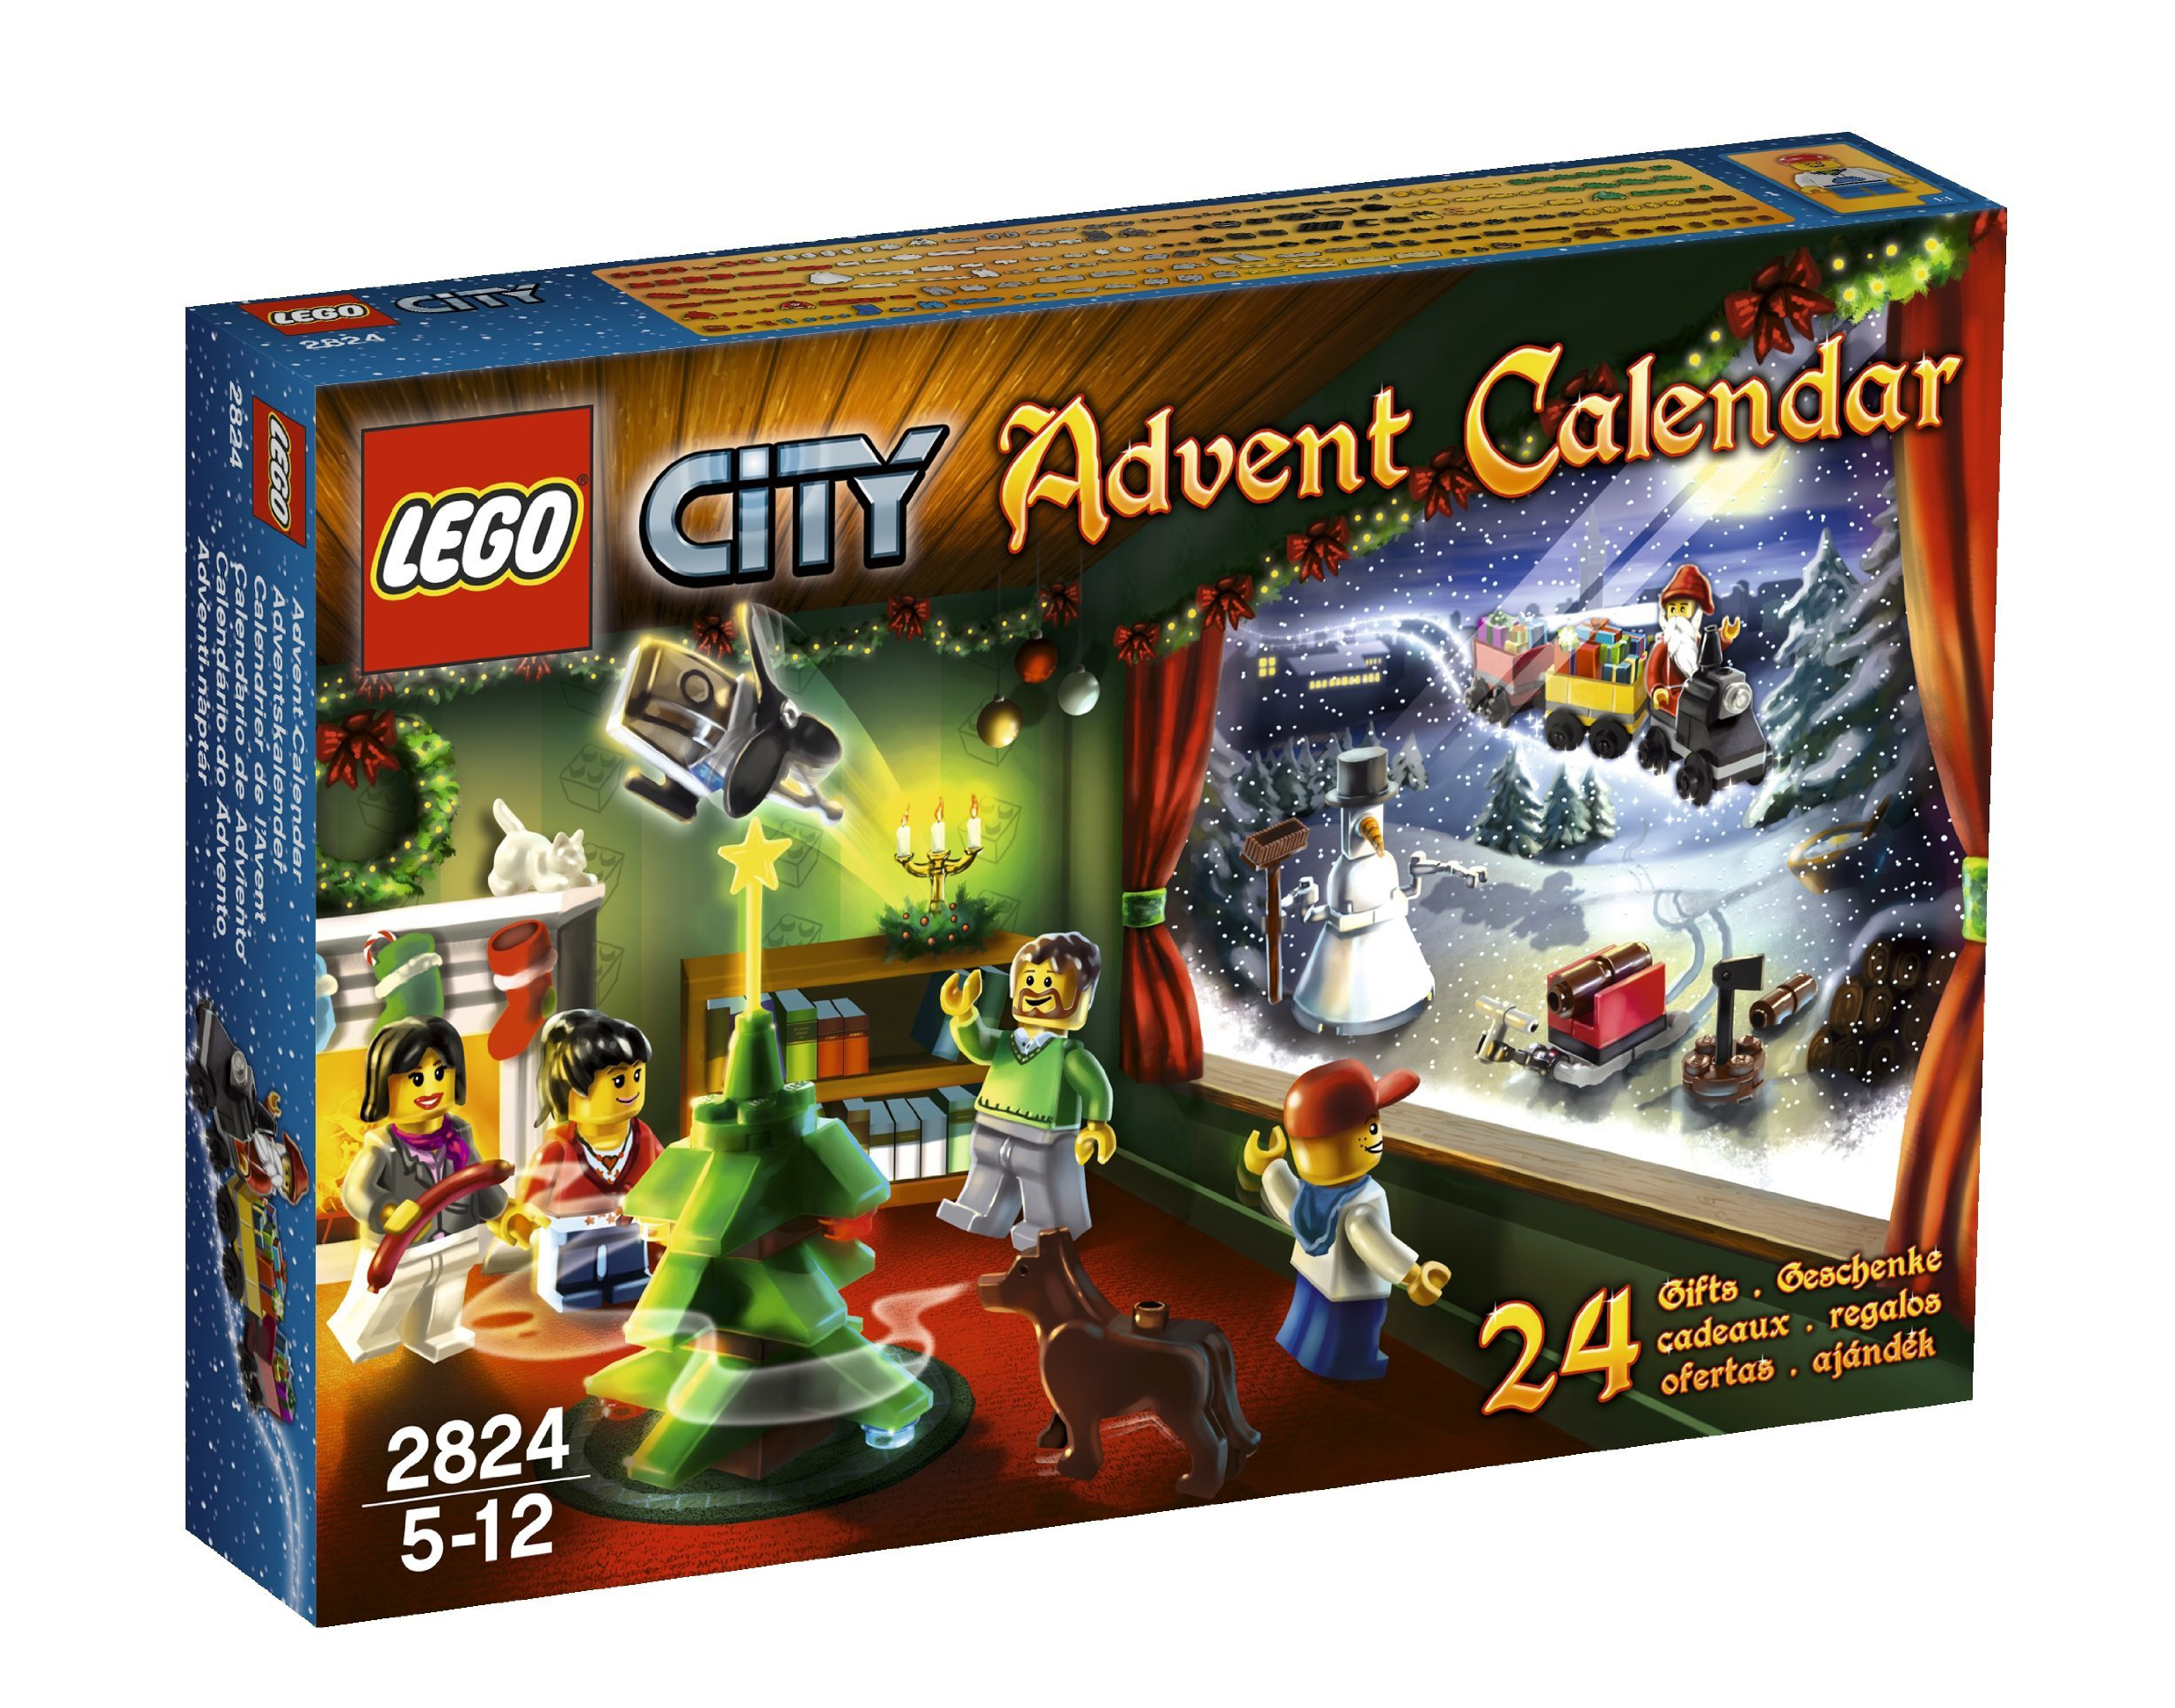 lego adventi naptár 2010 2010 Advent Calendars | A Modular Life lego adventi naptár 2010